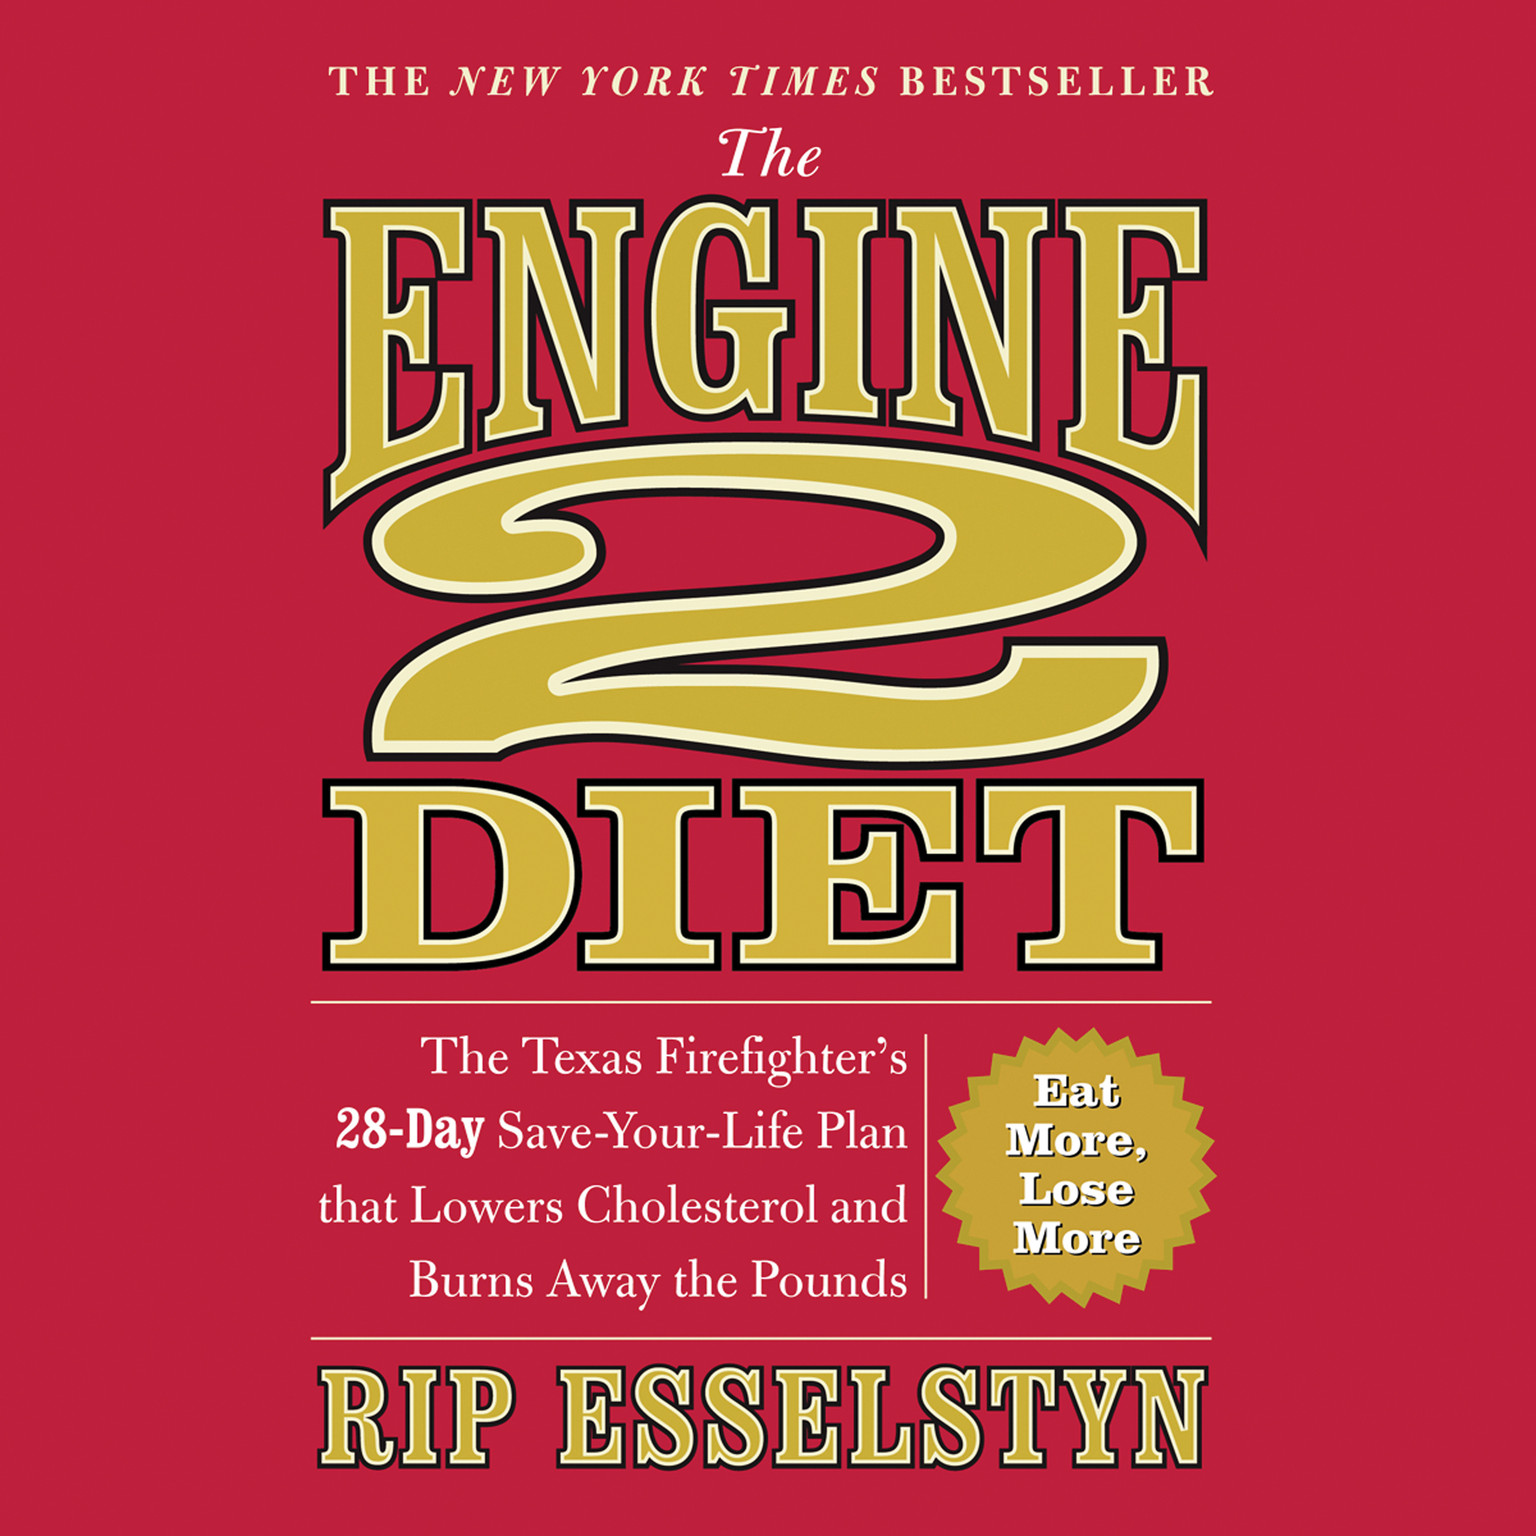 Printable The Engine 2 Diet: The Texas Firefighter's 28-Day Save-Your-Life Plan that Lowers Cholesterol and Burns Away the Pounds Audiobook Cover Art